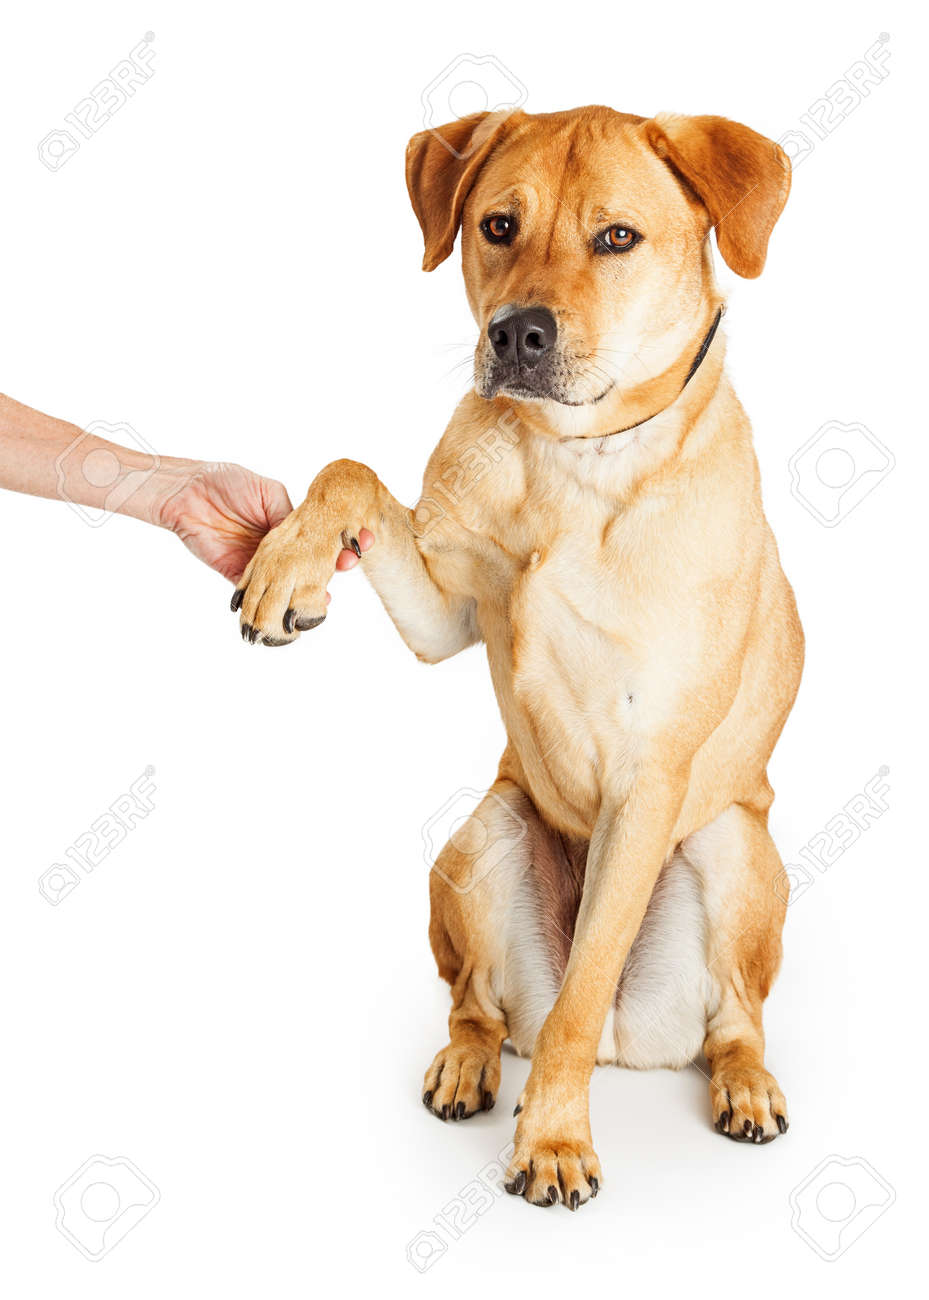 Obedient Yellow Labrador Retriever Mixed Breed Dog Raising Paw Stock Photo Picture And Royalty Free Image Image 55347021